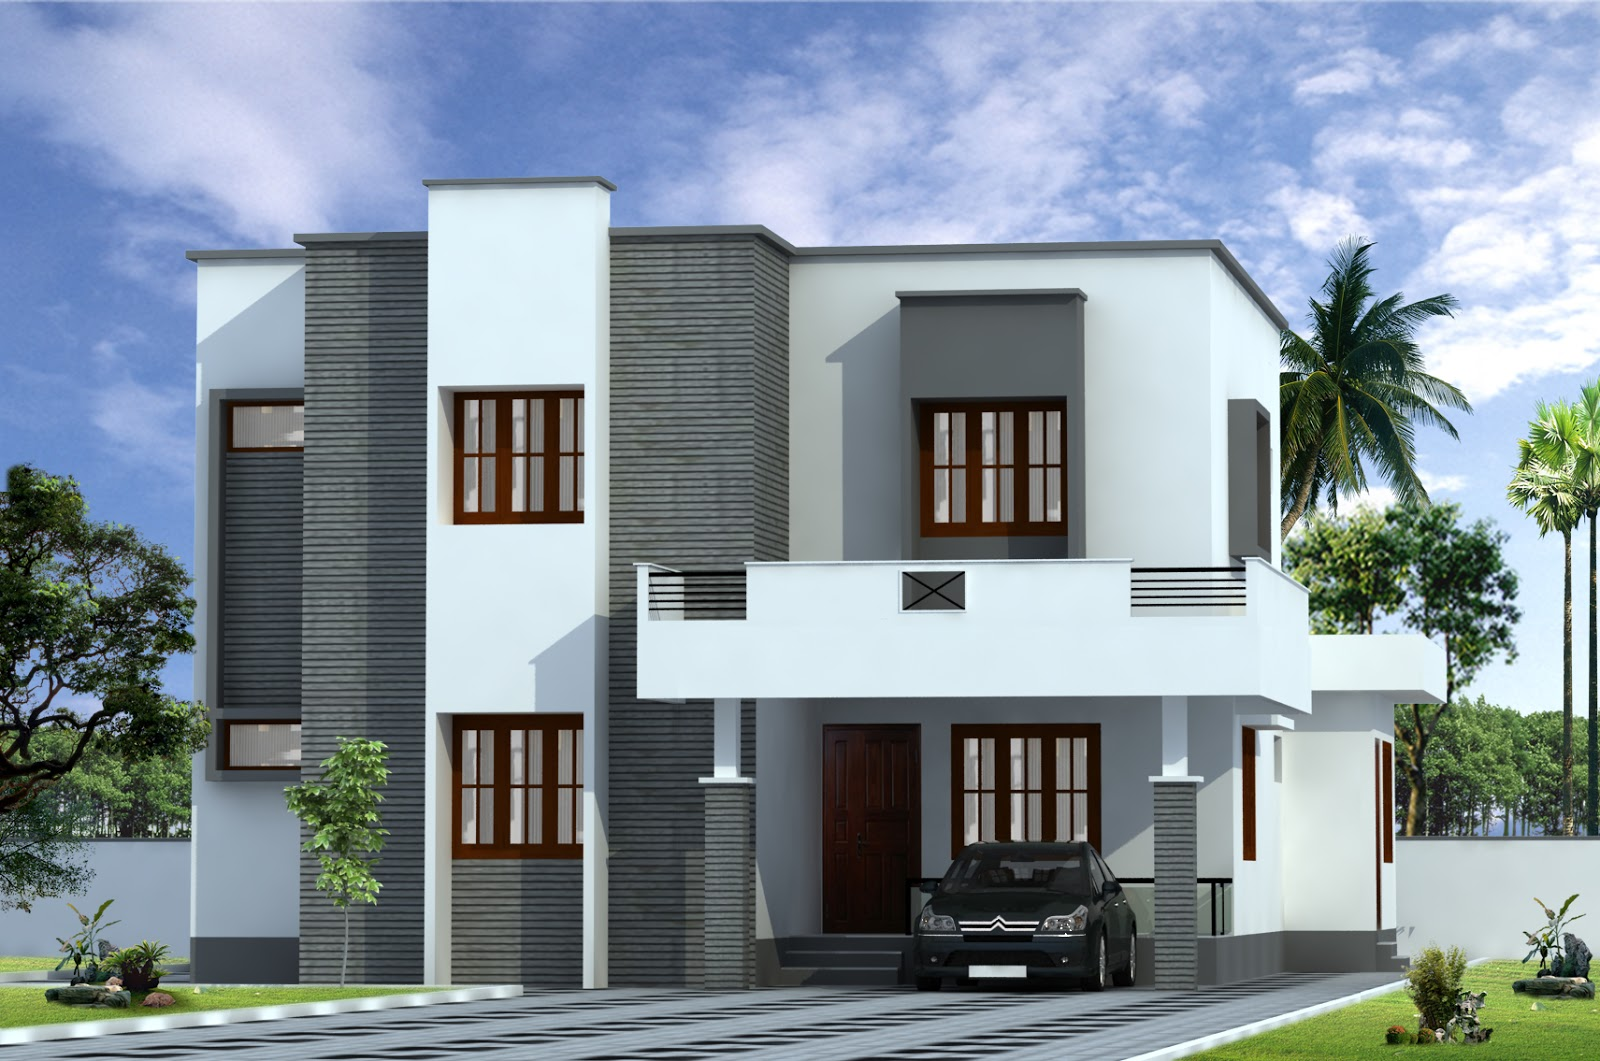 Build a building house designs for New build house designs